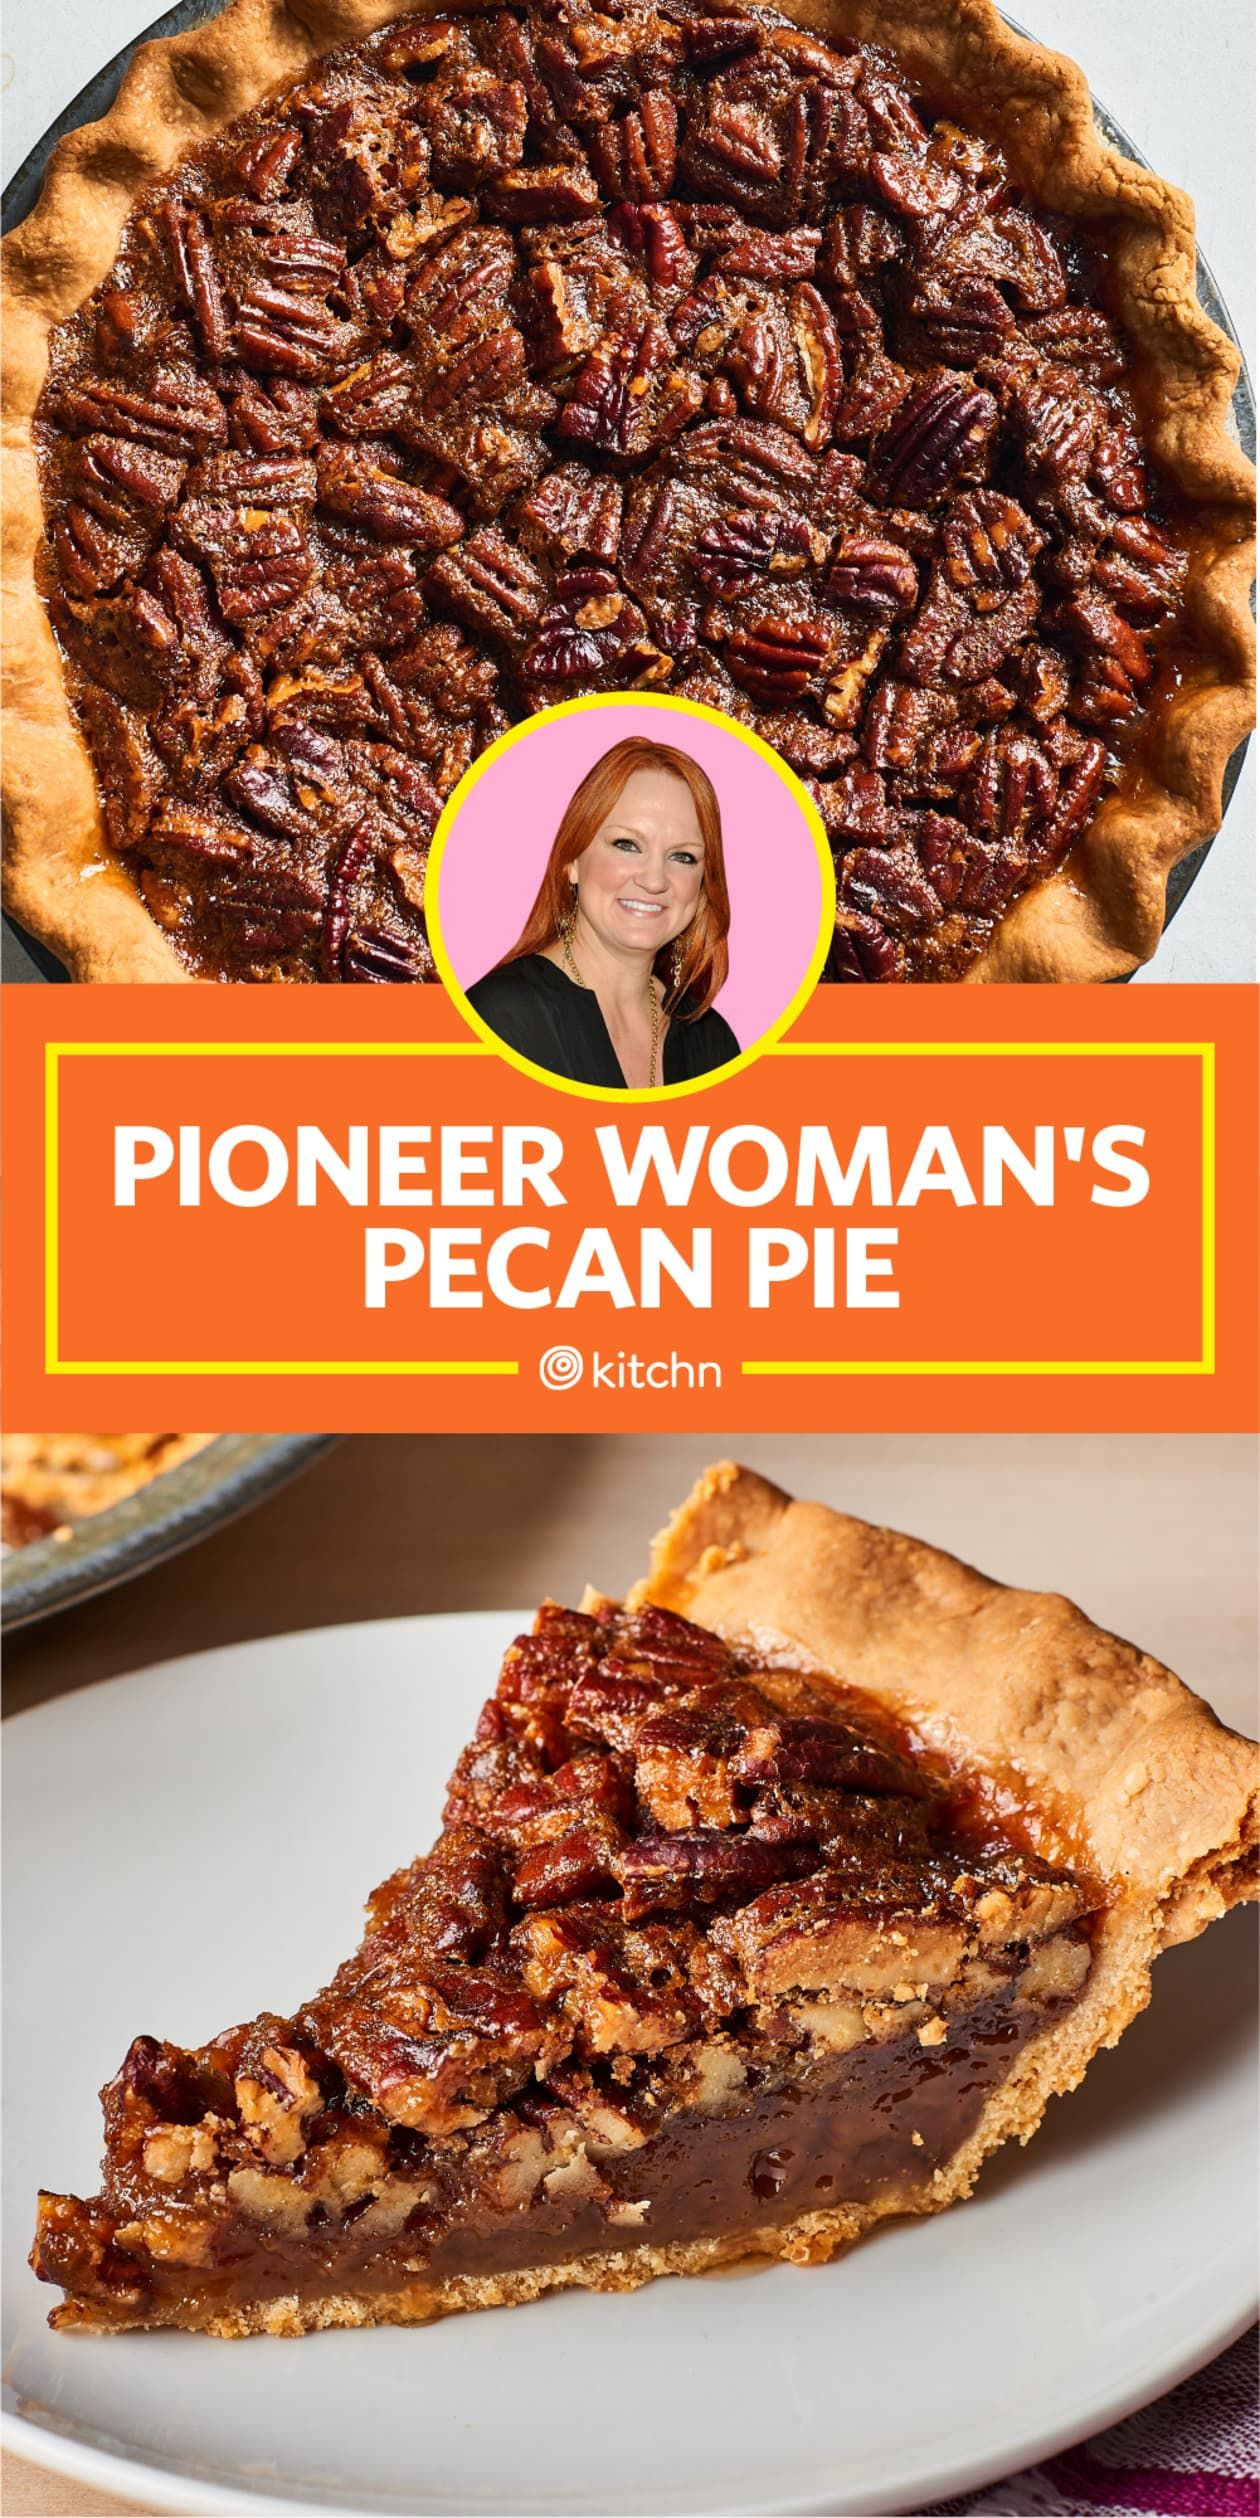 I Tried Pioneer Woman's Famous Pecan Pie